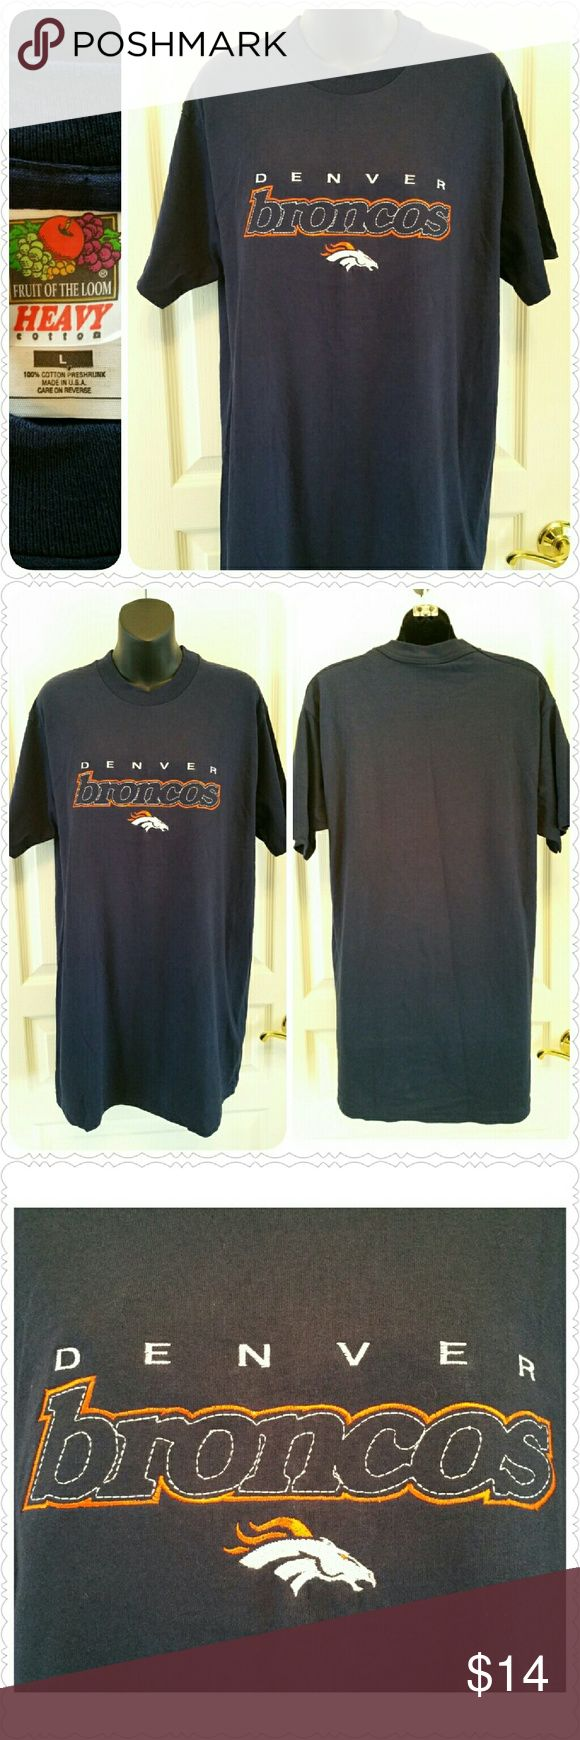 """NEW Denver Broncos t-shirt, embroidered logo Brand new without tag, no flaws * Denver Broncos t-shirt  * Embroidered logo * Color:  Navy blue * Size:  Large  * 100% pre-shrunk cotton  * Brand:  Fruit of the Loom  * 19"""" shoulders  * 41"""" chest  * 31"""" length shoulder to hem  * Non-smoking home  * Thanks for visiting my closet!  Aurora33180 Fruit of the Loom Tops Tees - Short Sleeve"""